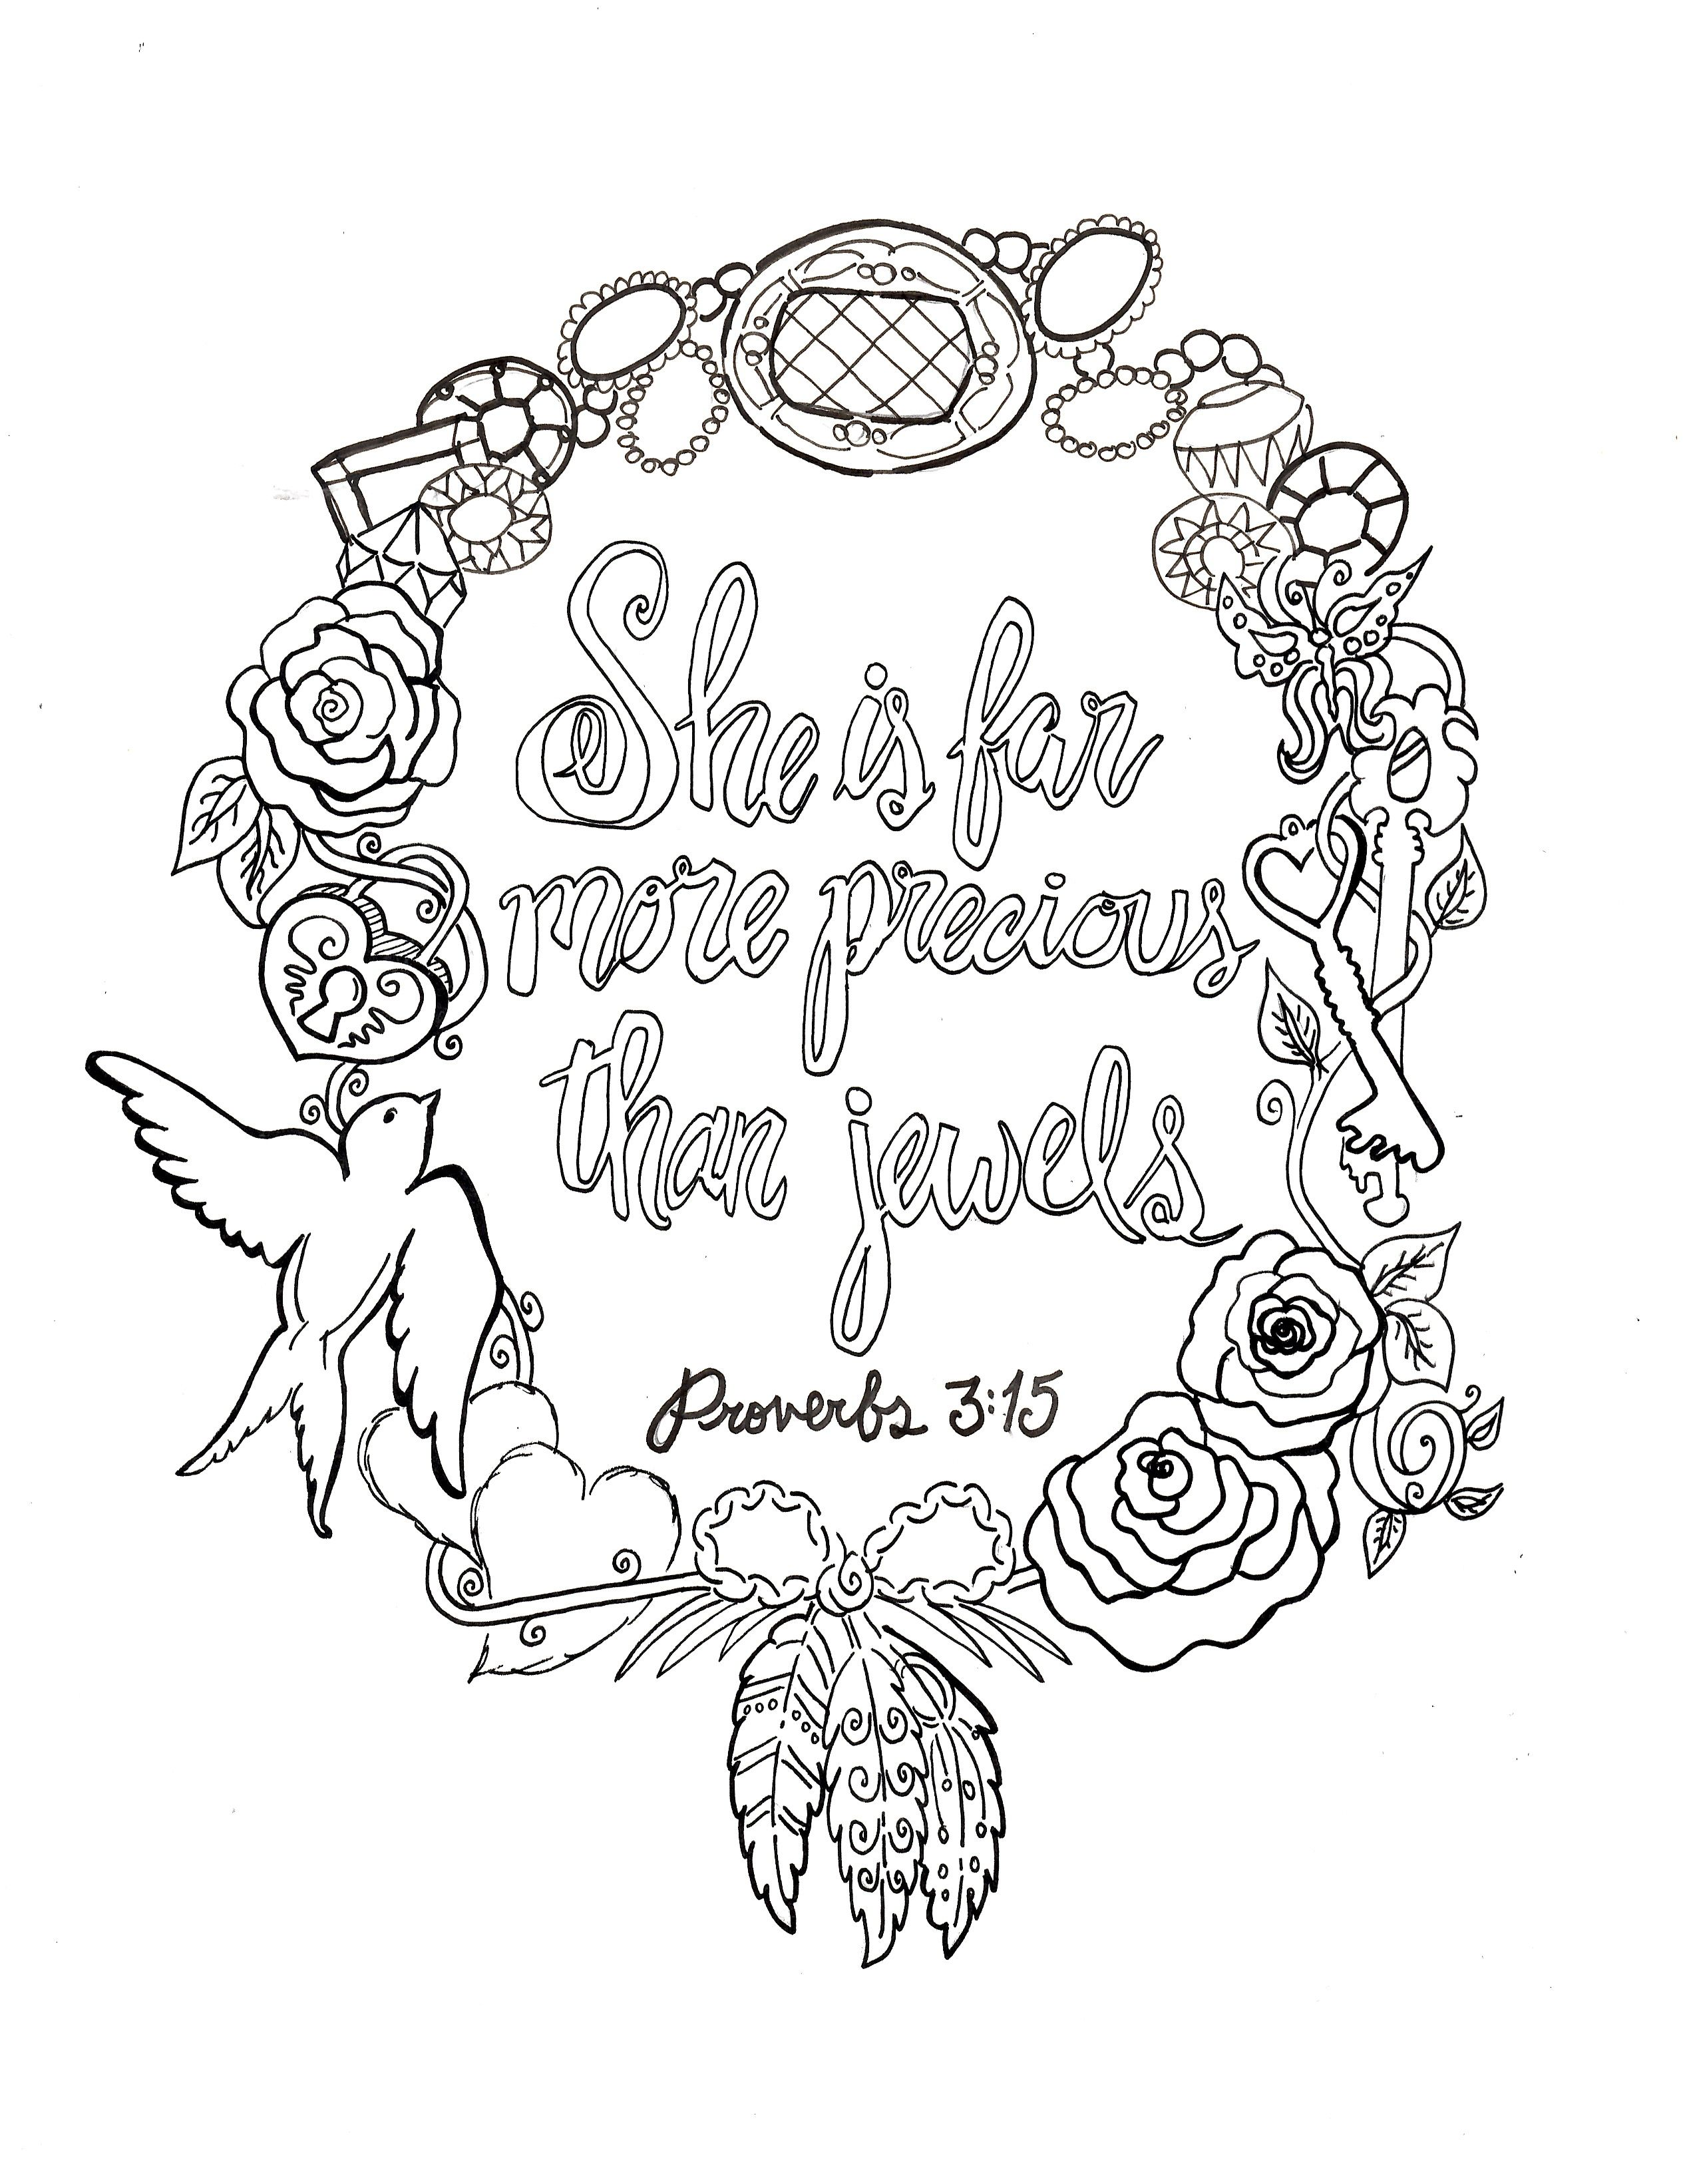 Proverbs 3 15 Printable Free 8x10 Coloring Devotions To Journal God S Word Soul Doodles Scripture Bible Coloring Scripture Coloring Bible Verse Coloring Page